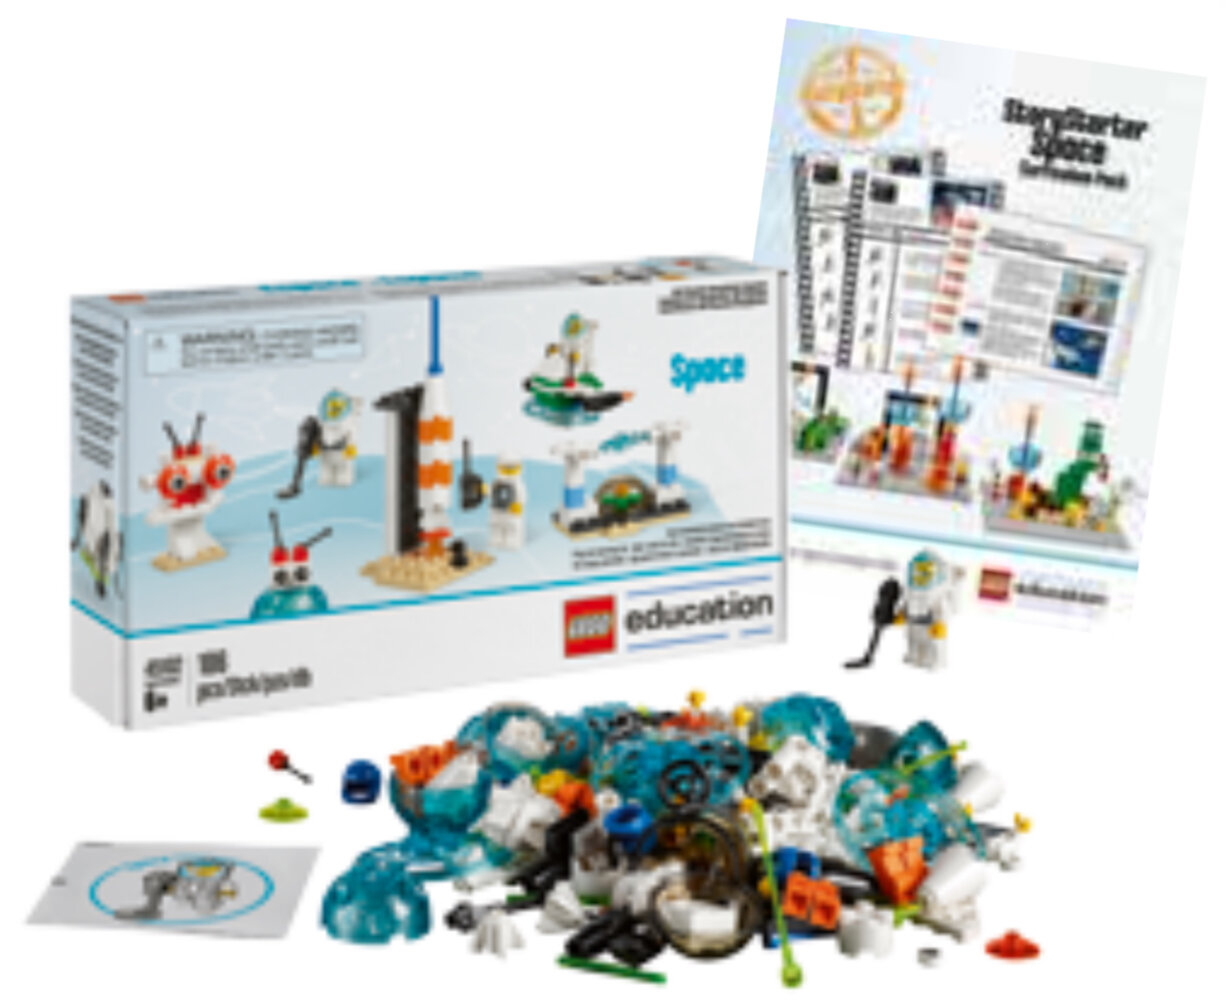 StoryStarter Space Expansion Set and Curriculum Pack